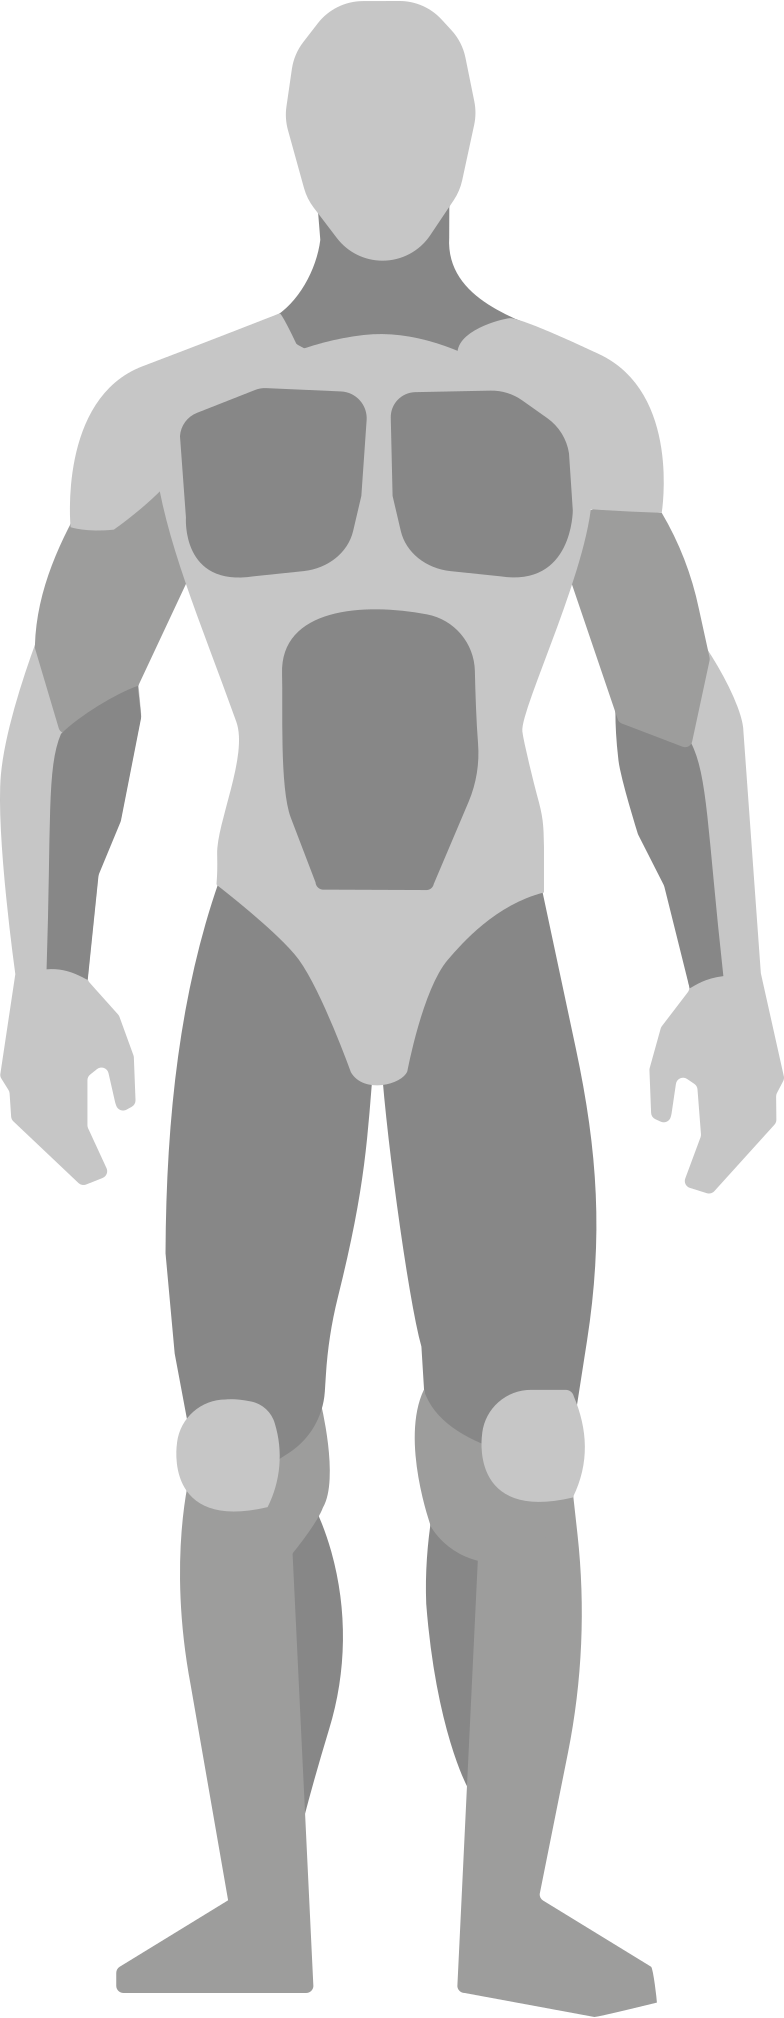 e diagram of the human body Clipart illustration in PNG, SVG